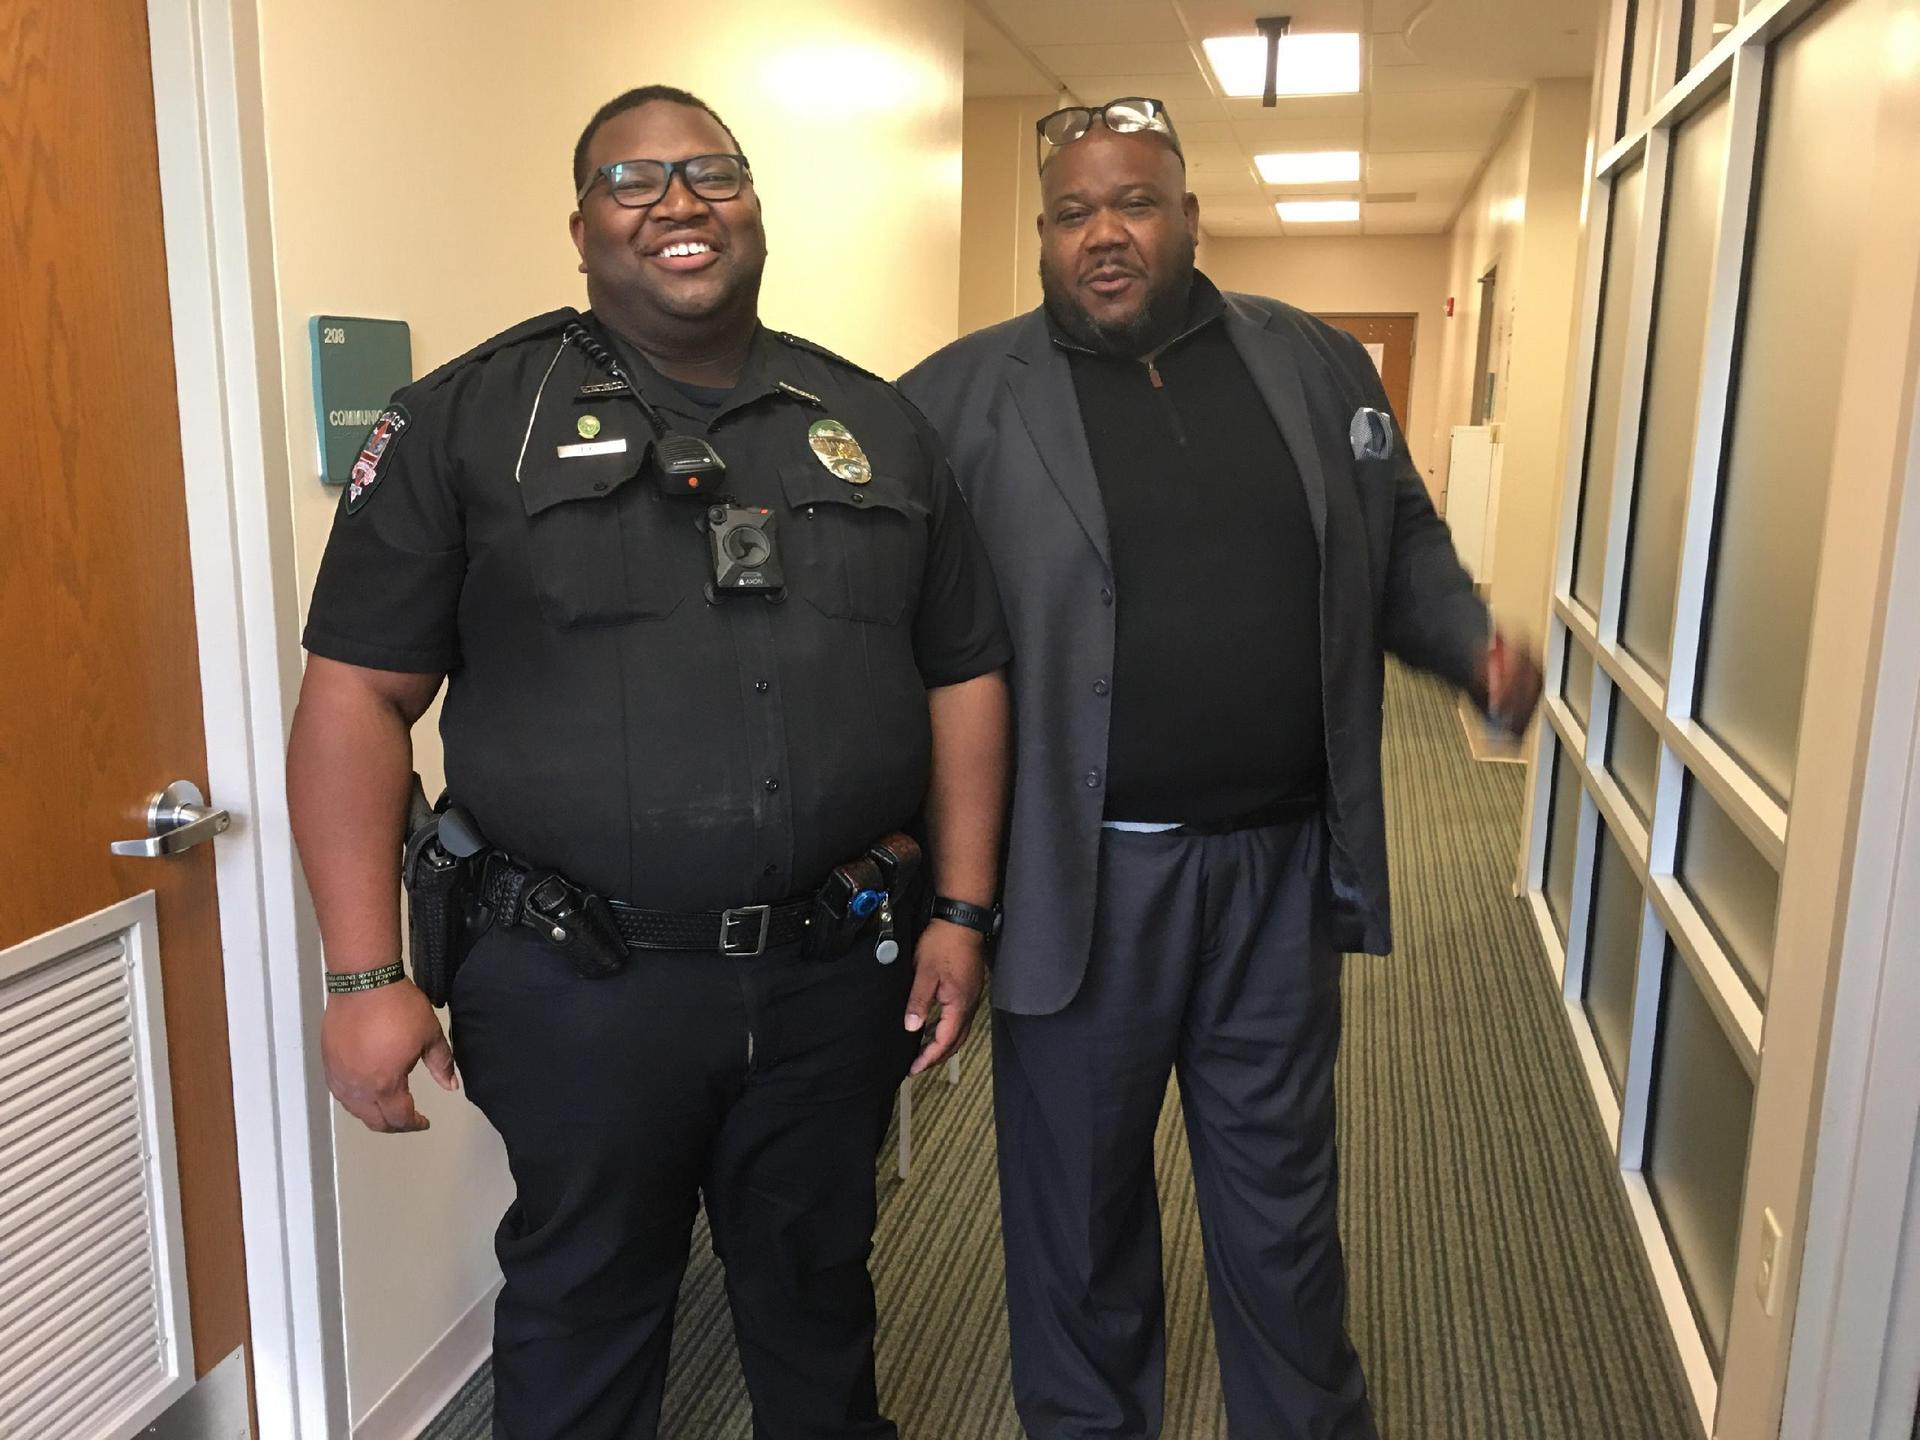 Officer King and Superintendent Johnson